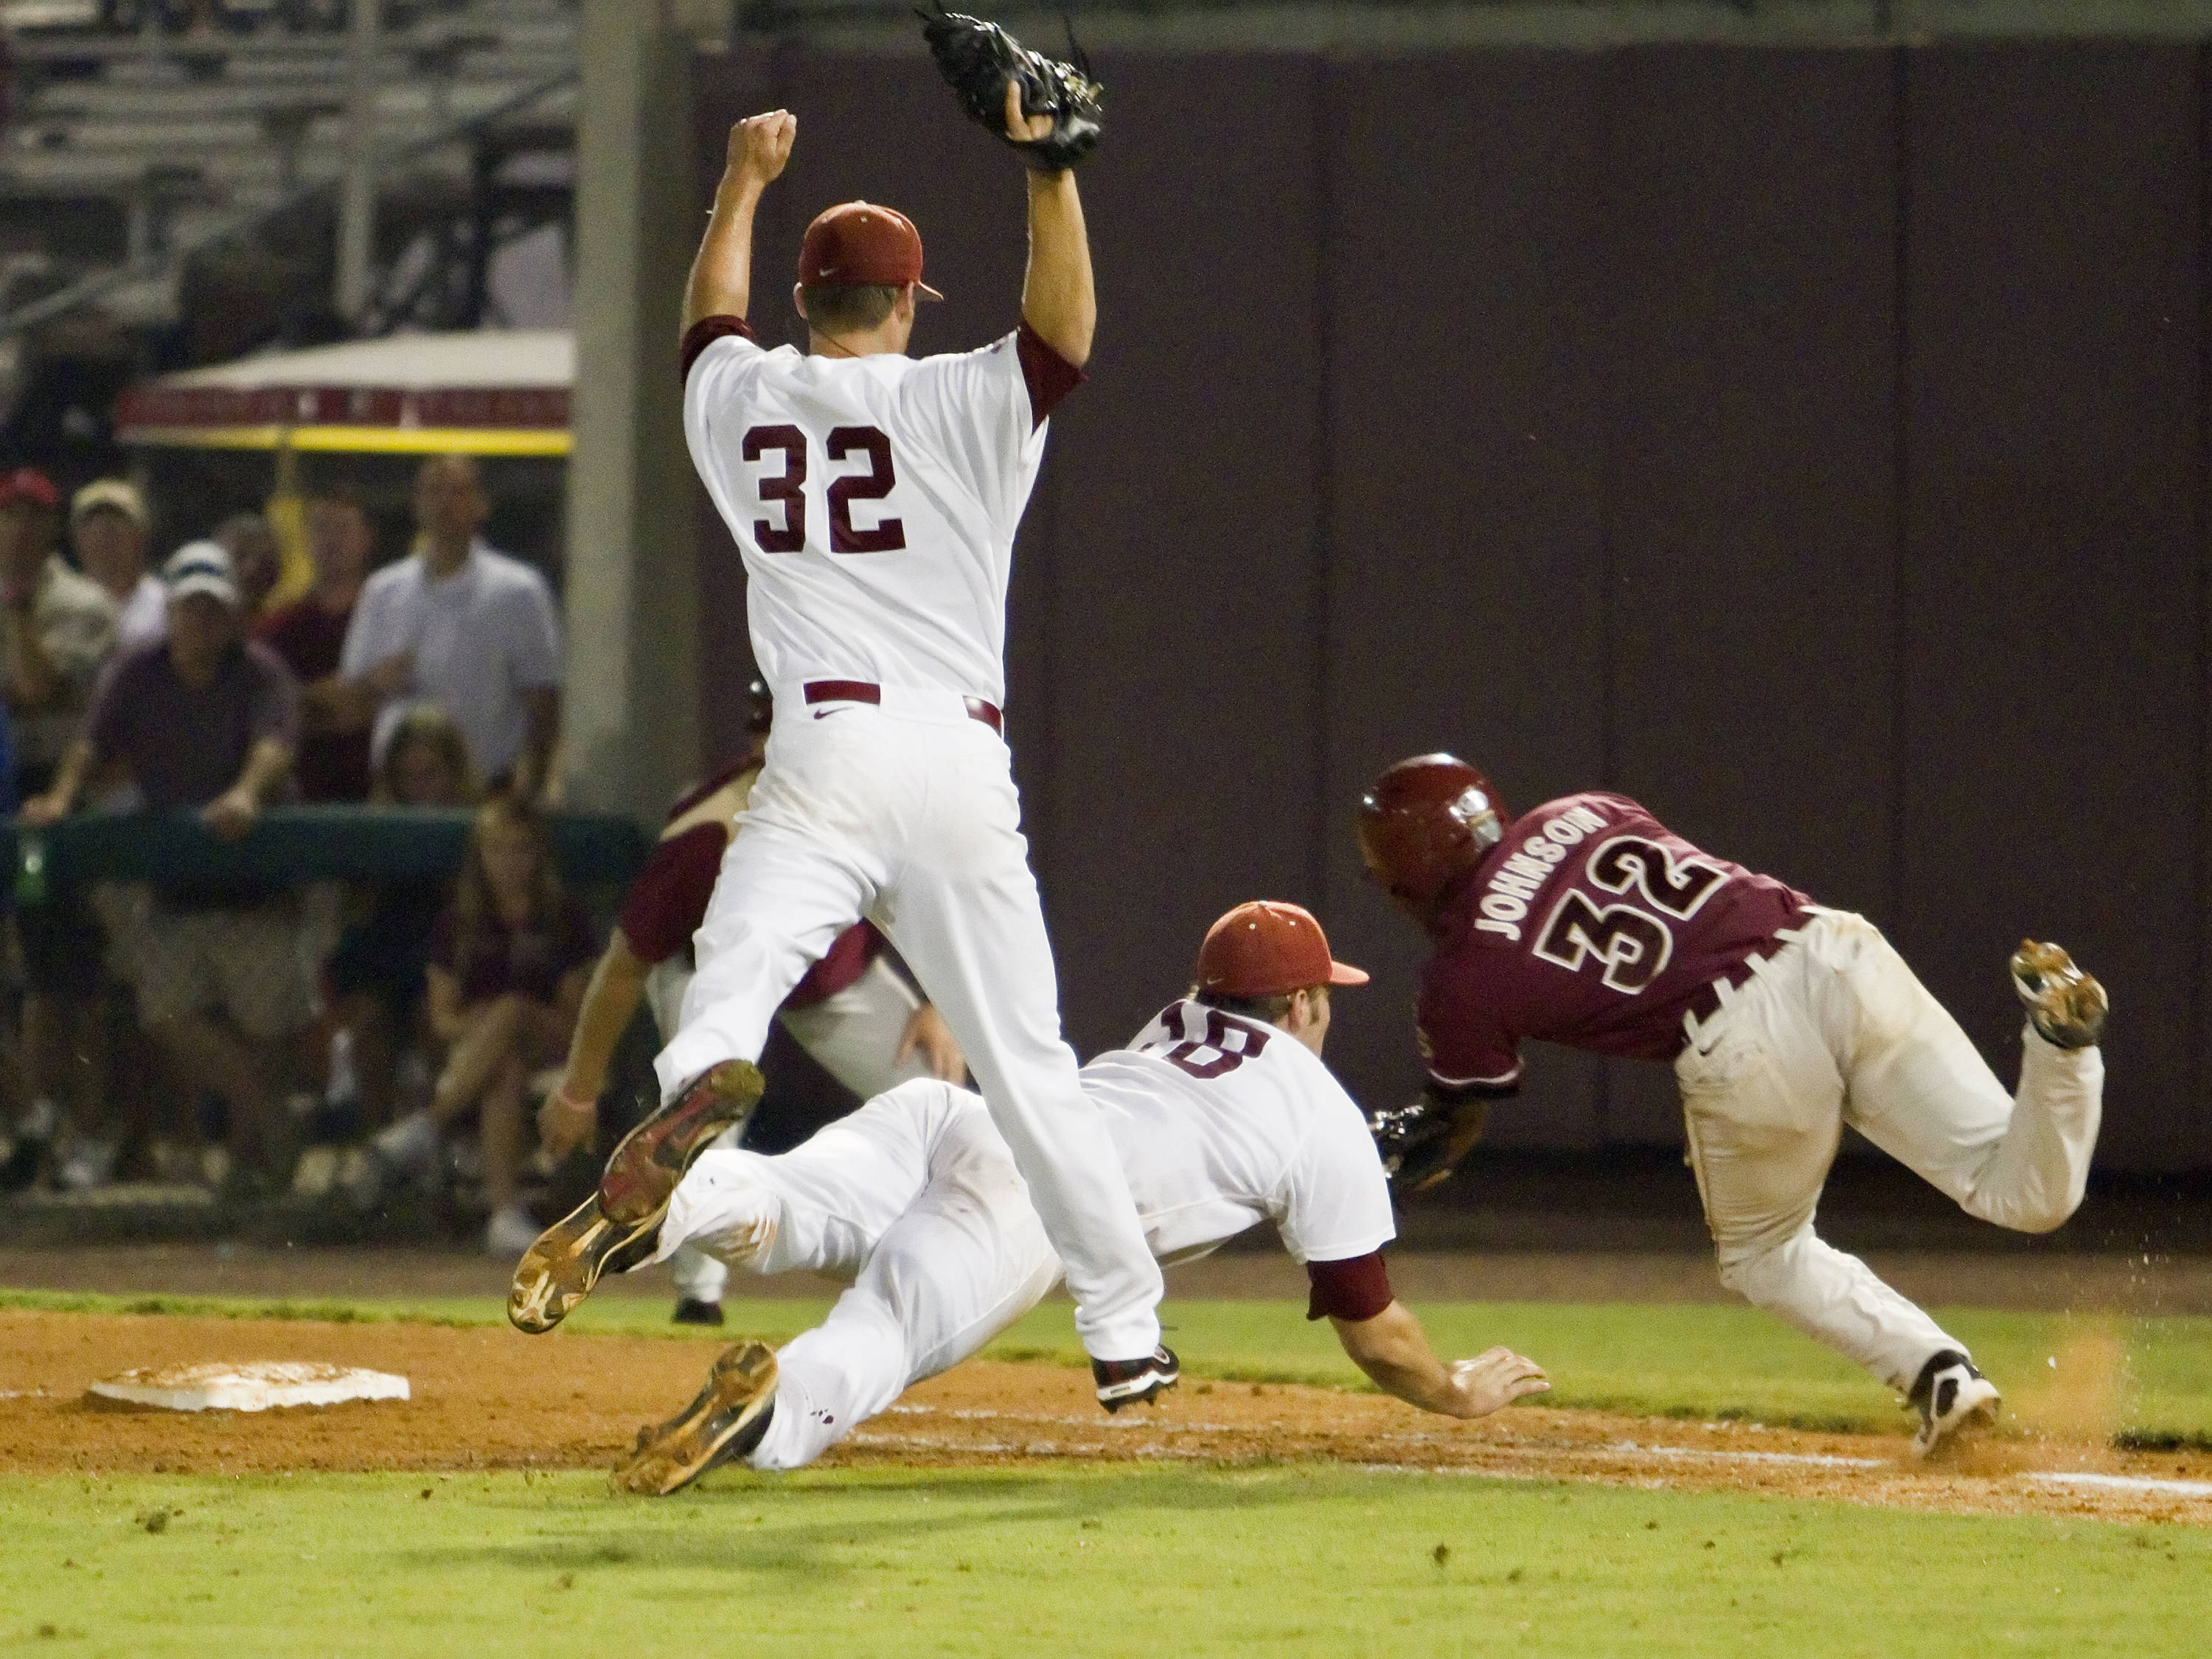 Third baseman Sherman Johnson's (32) diving attempt to avoid a tag